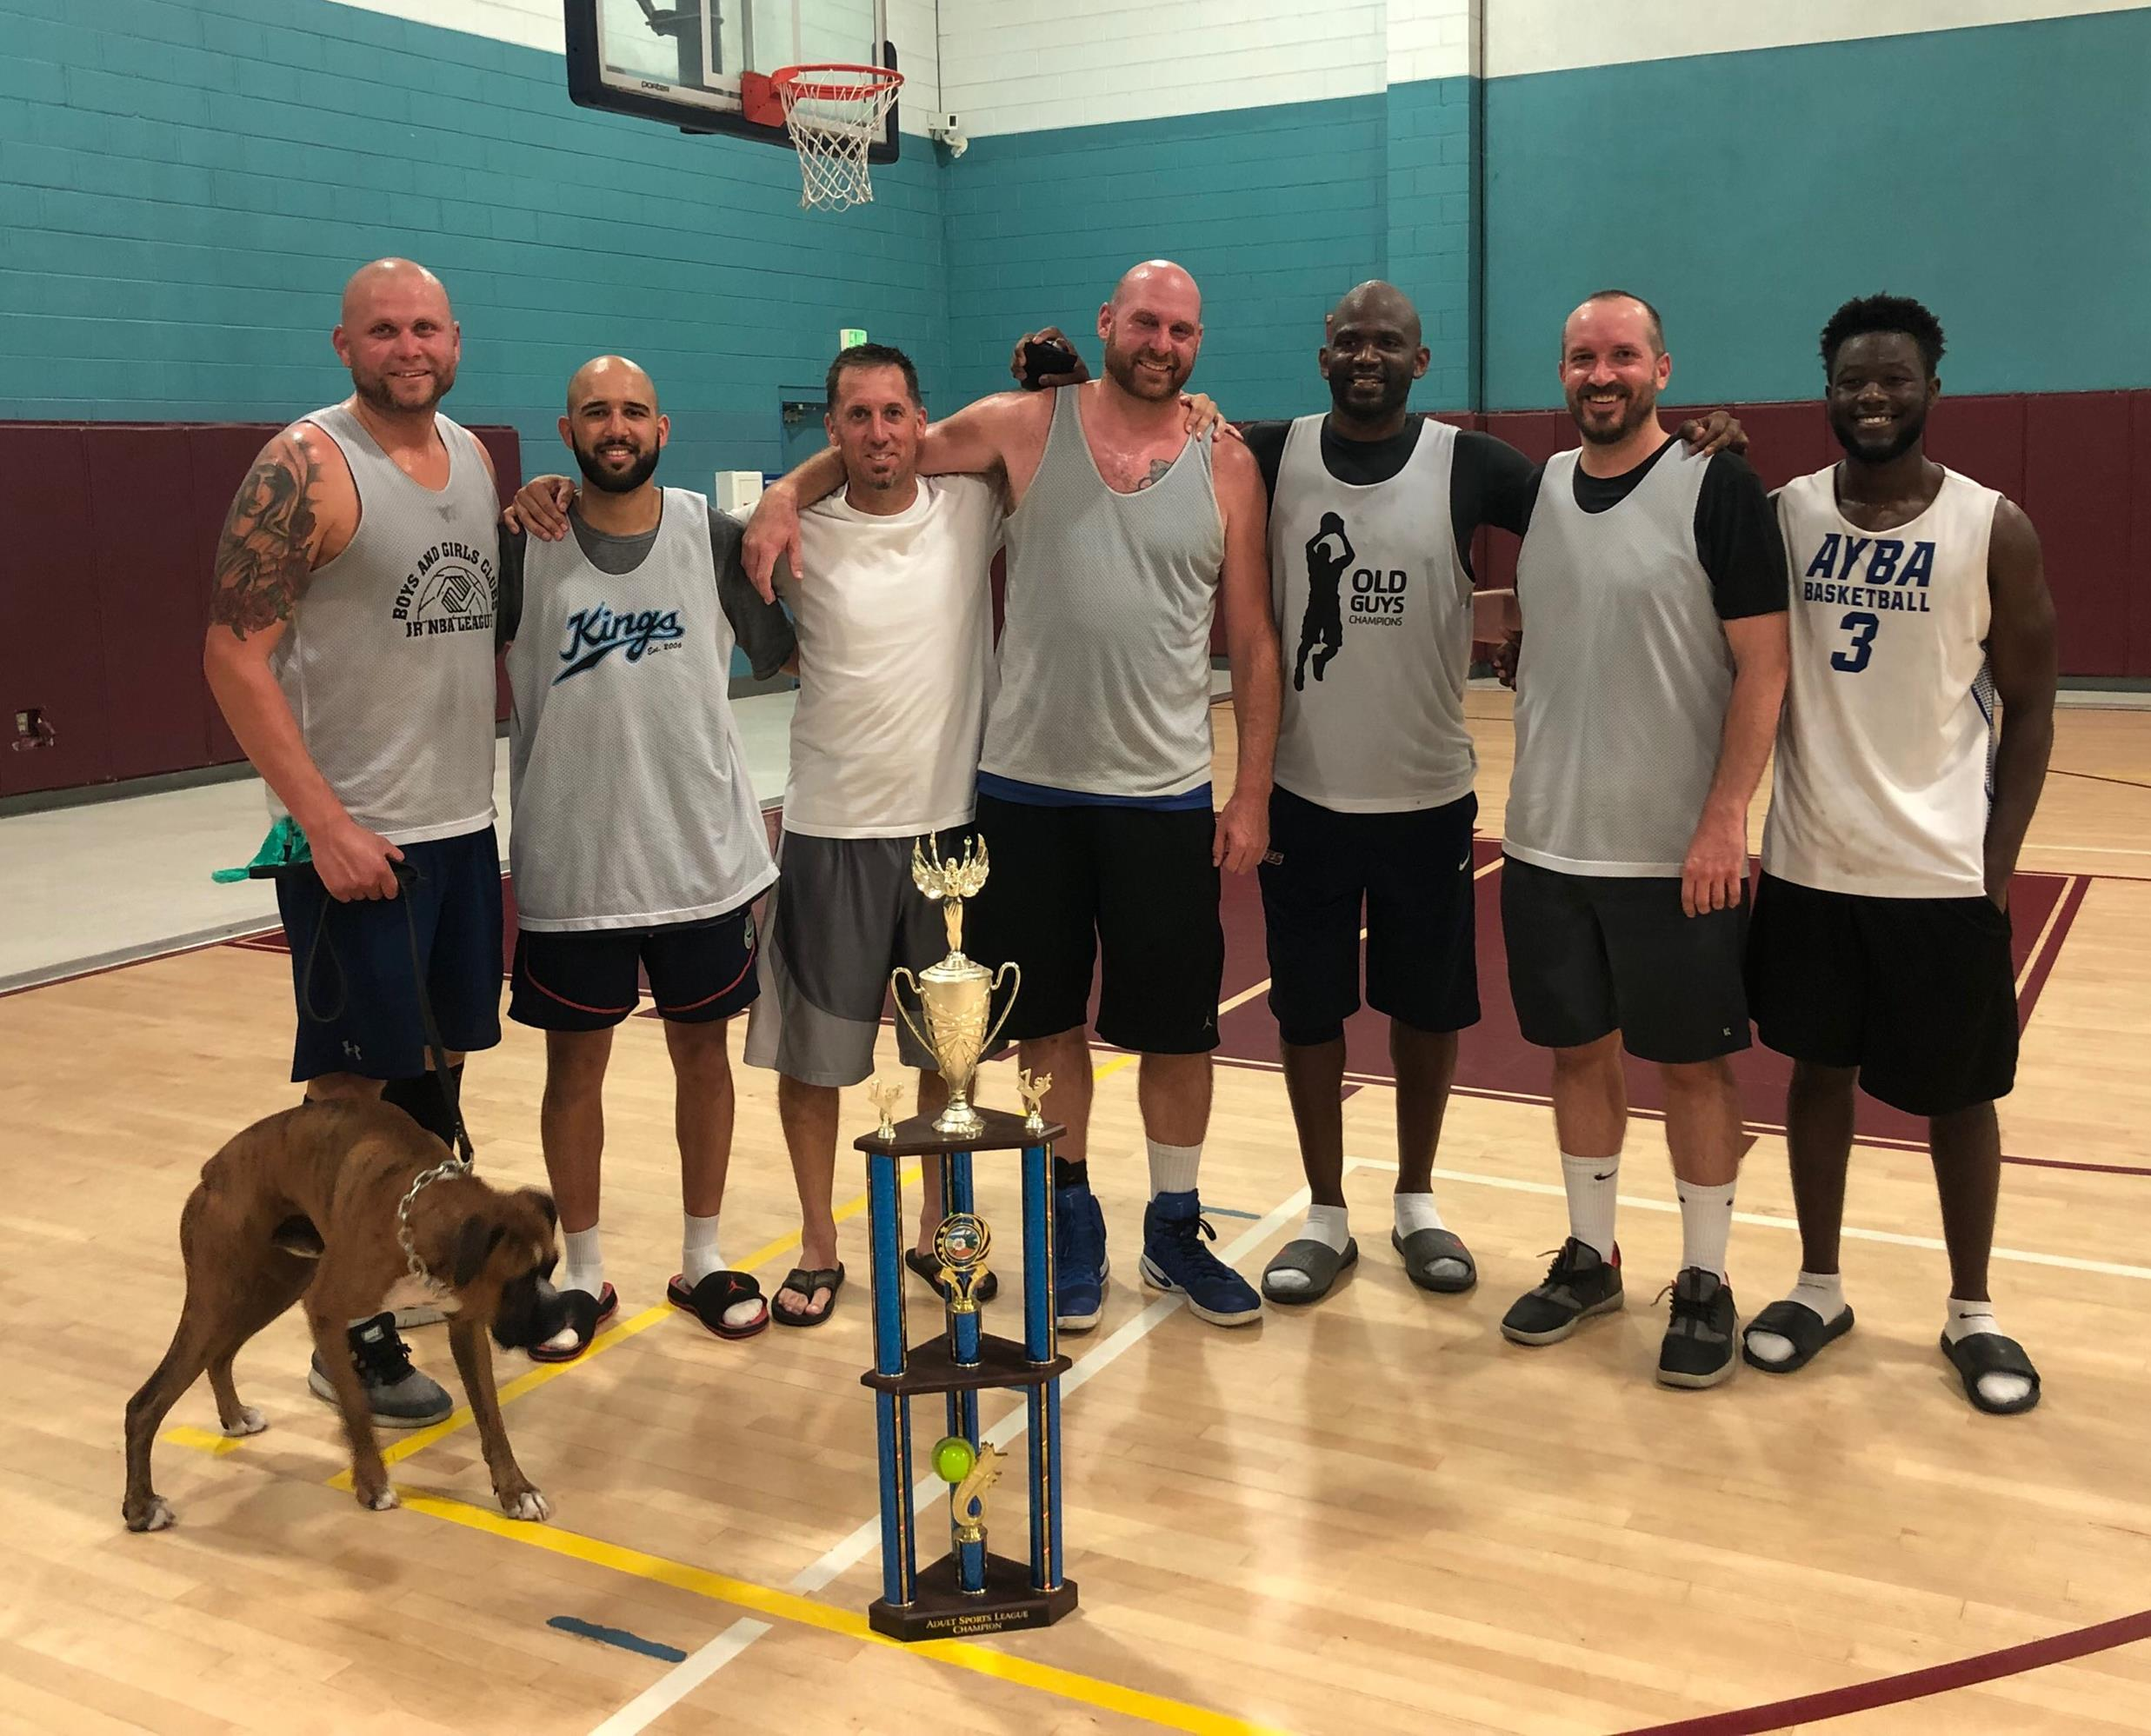 Adult Basketball, Summer 2019 - Thursday Champions